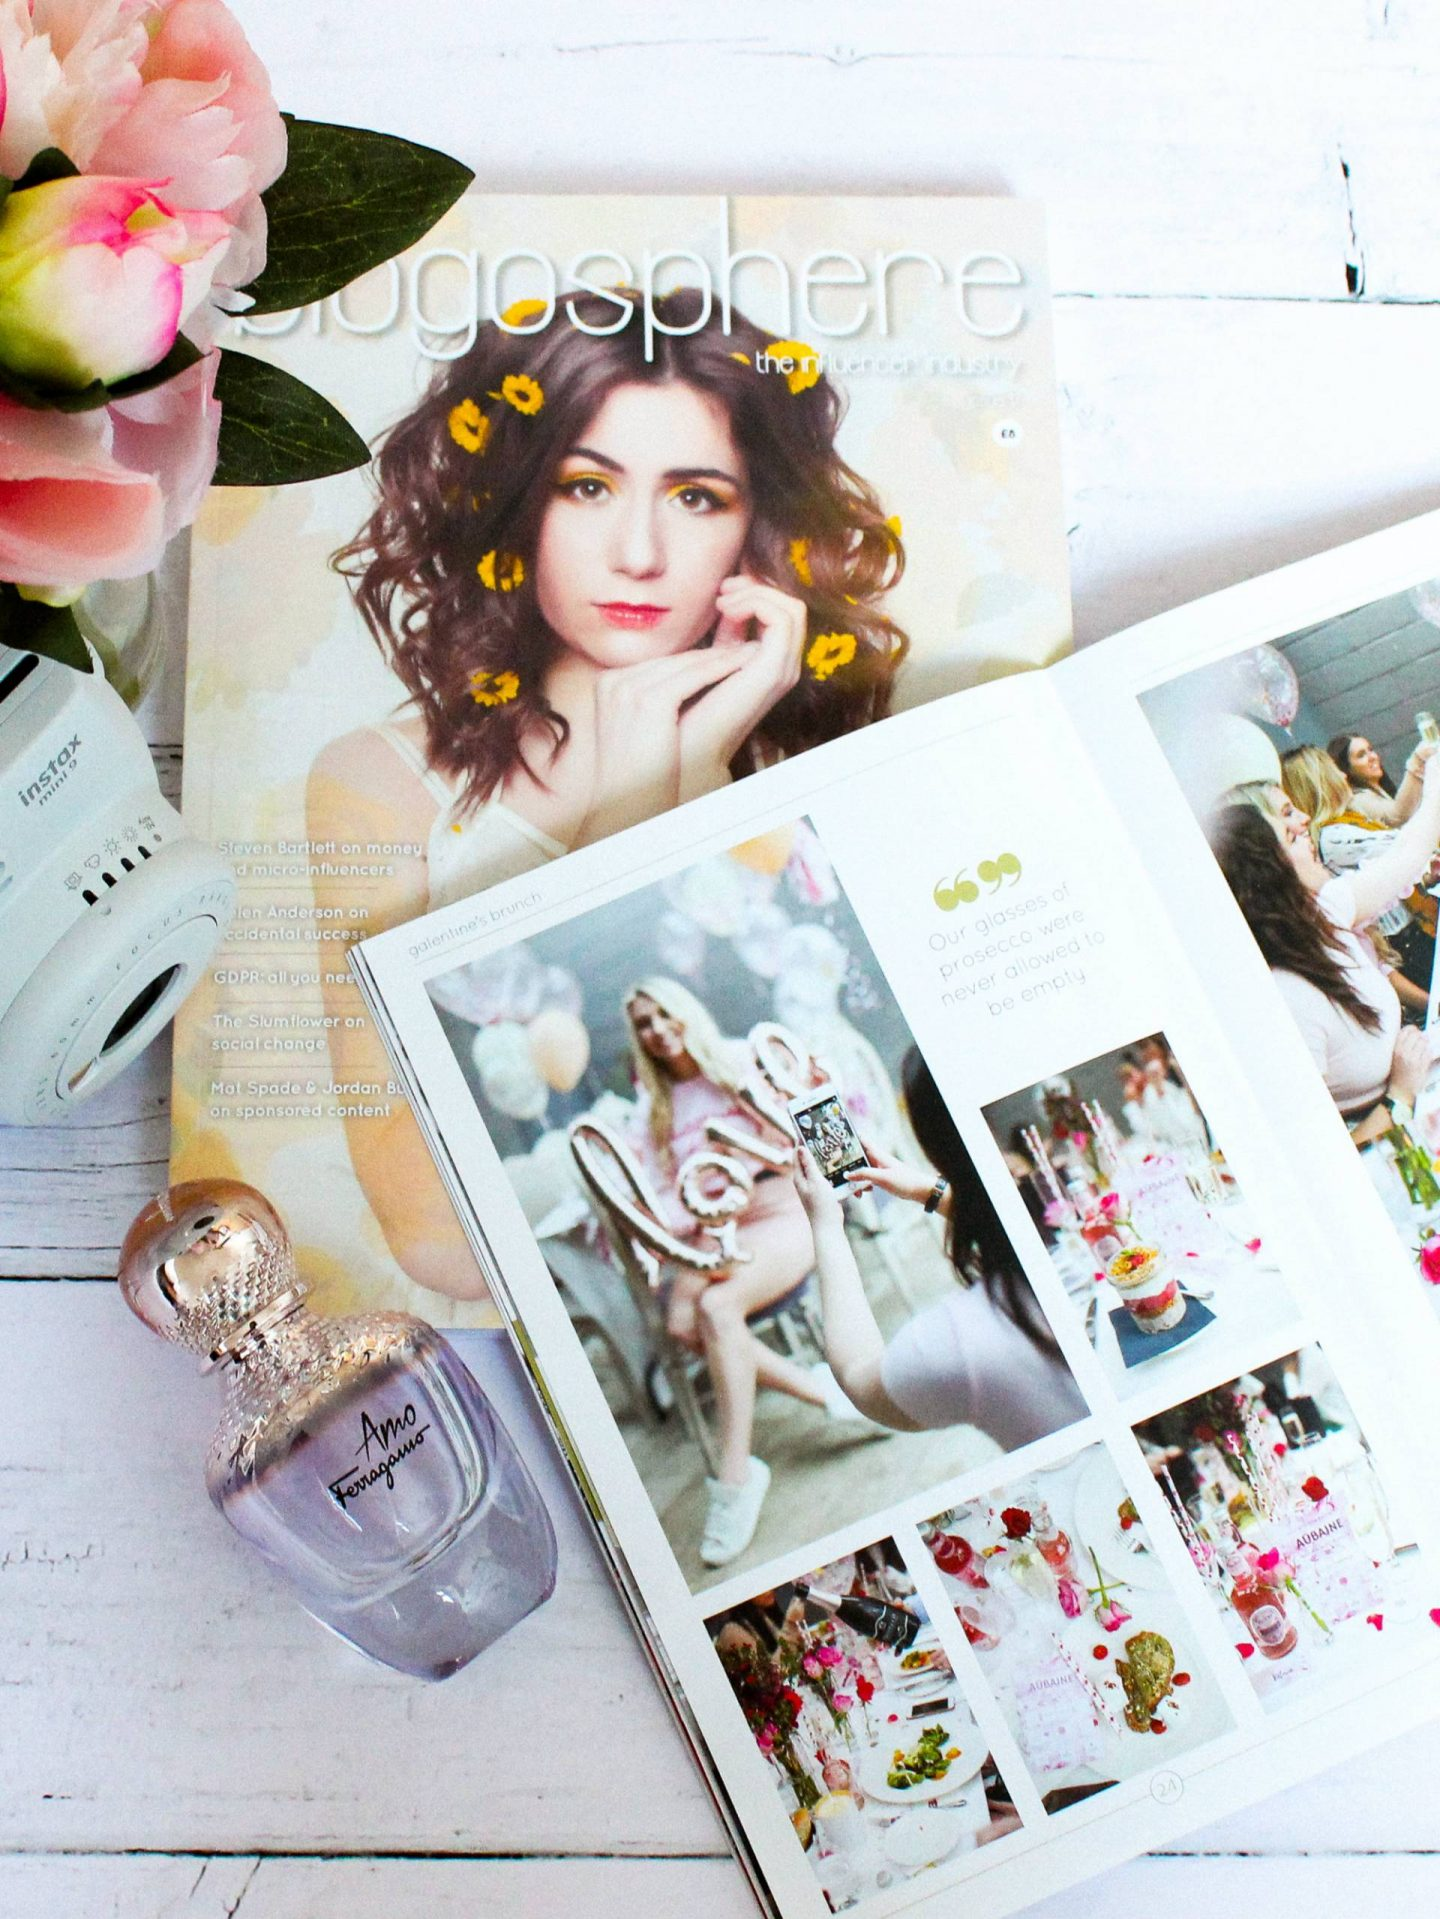 Blogosphere issue 17 – The dodie issue